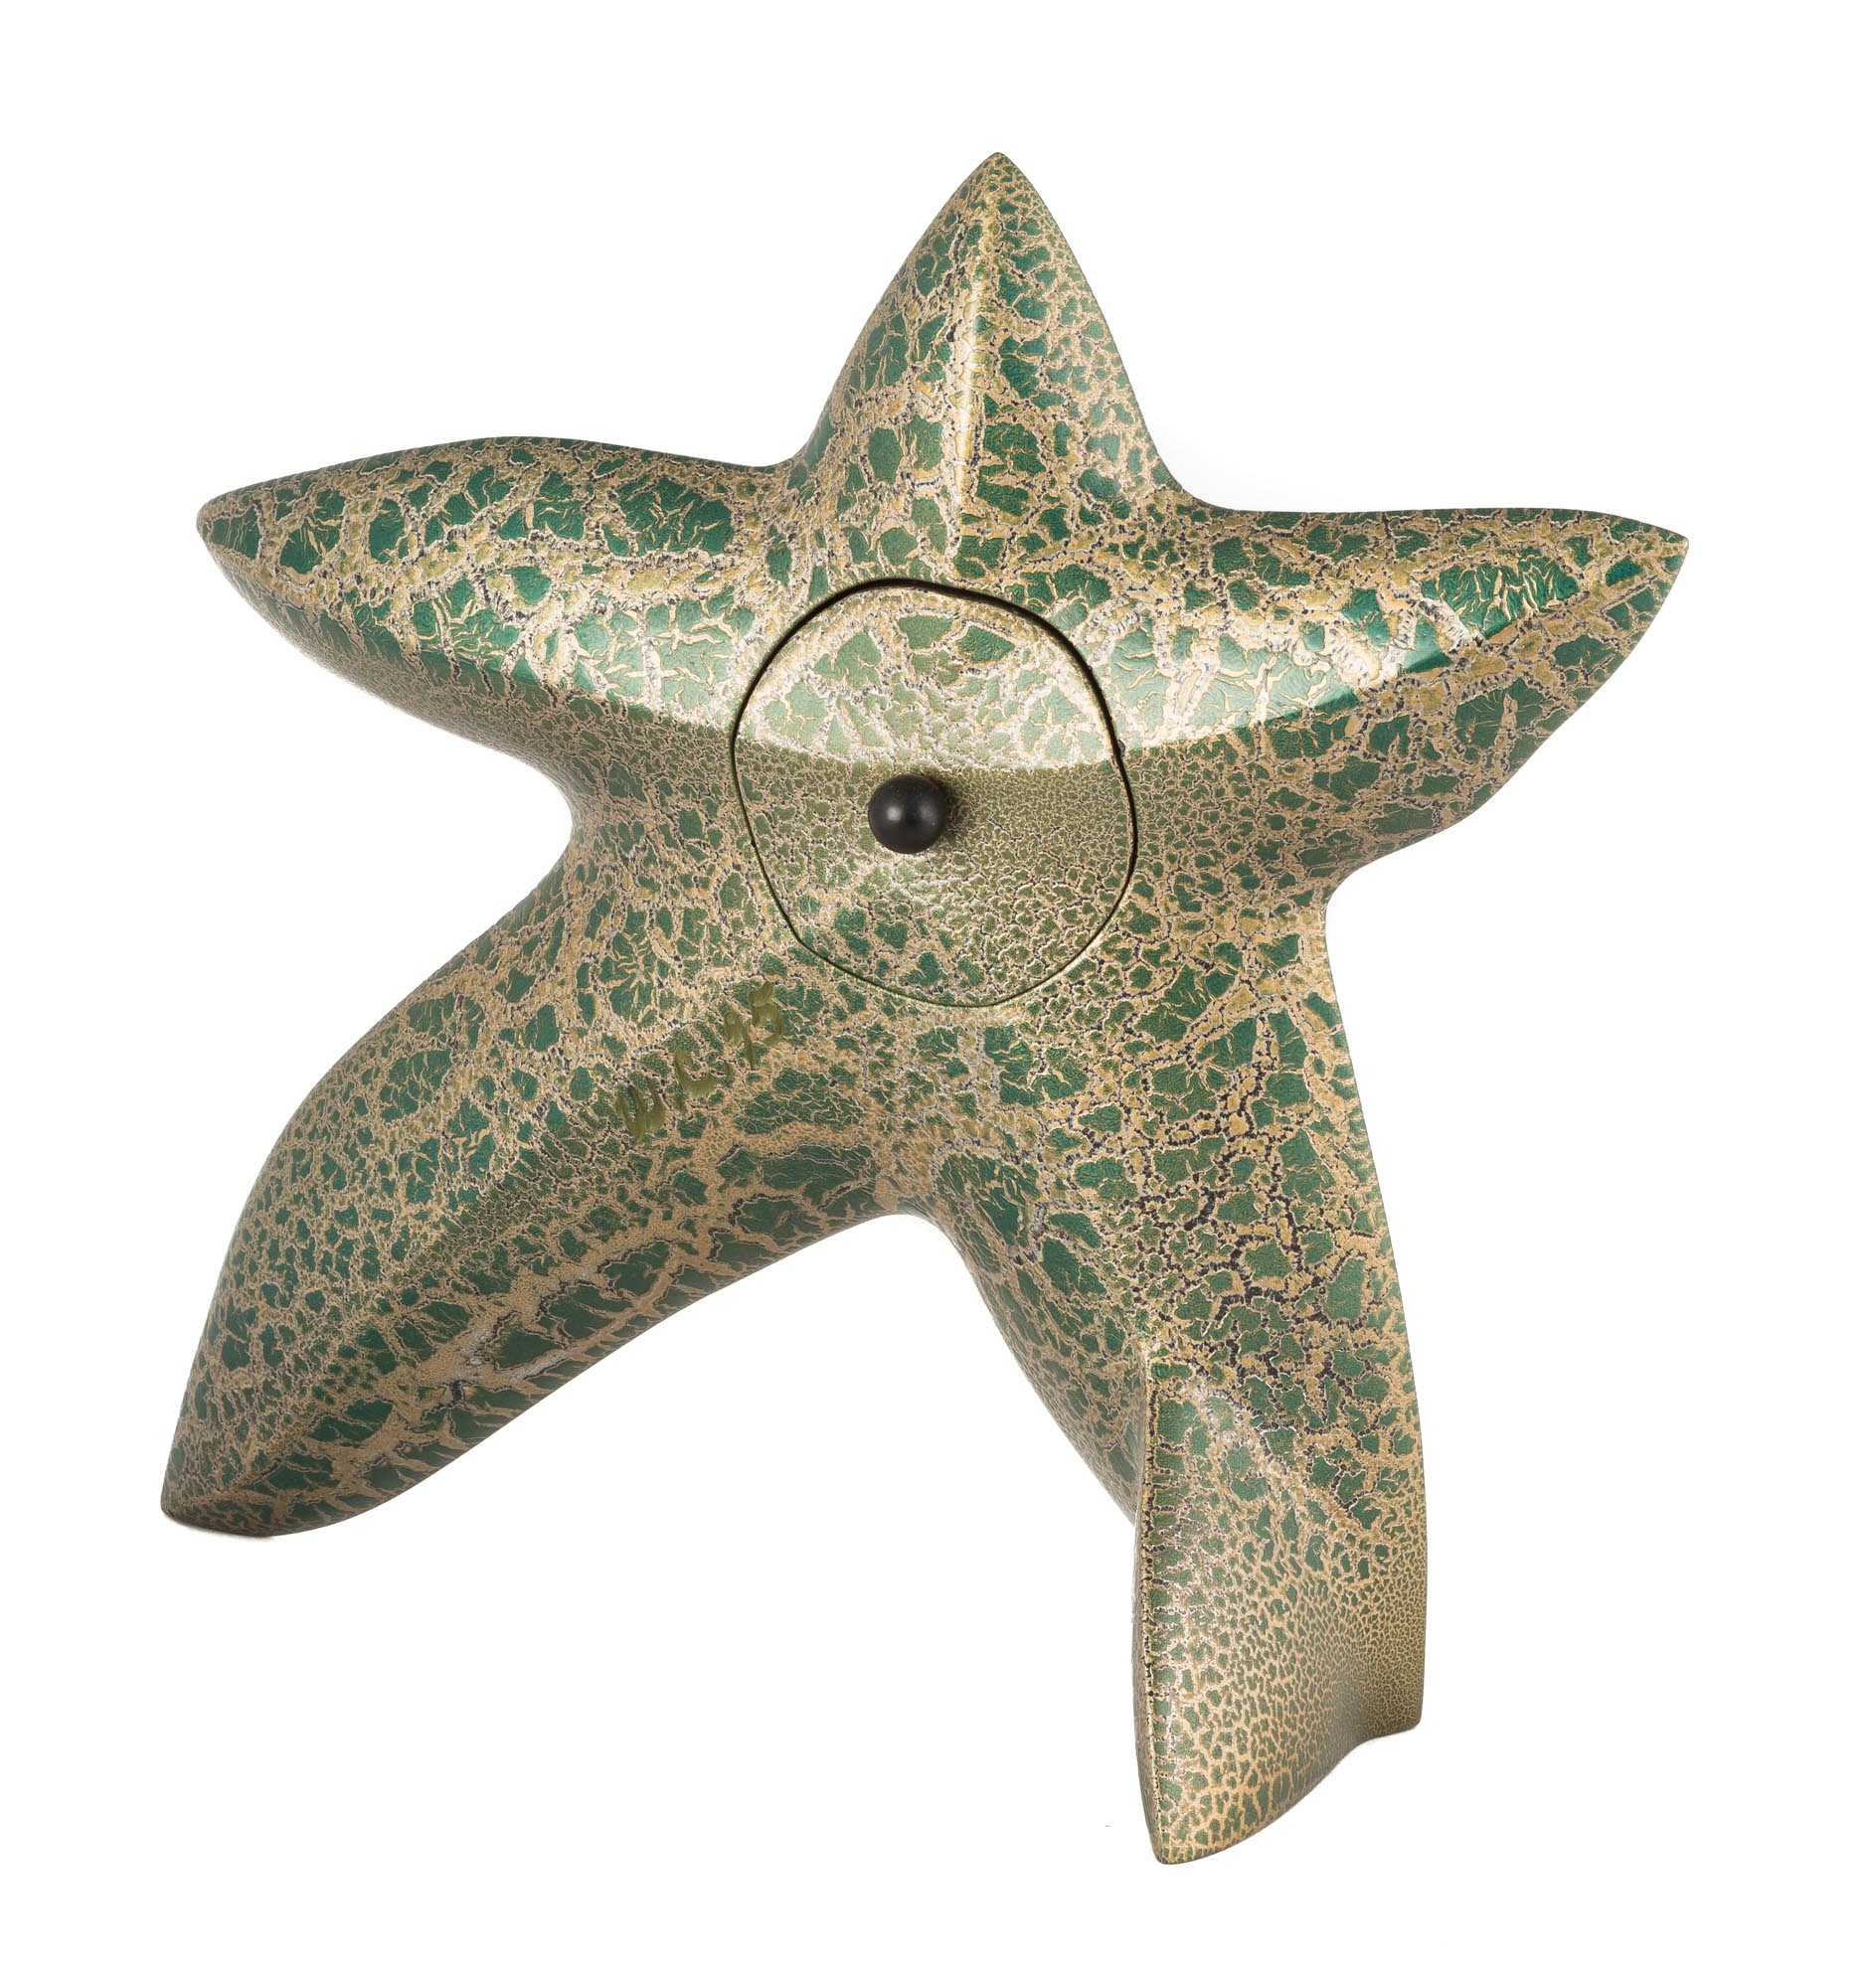 Lot 19 - Wendell Castle (American, 1932-2018) Starfish Clock. Polychrome wood with crackle finish. Signed '